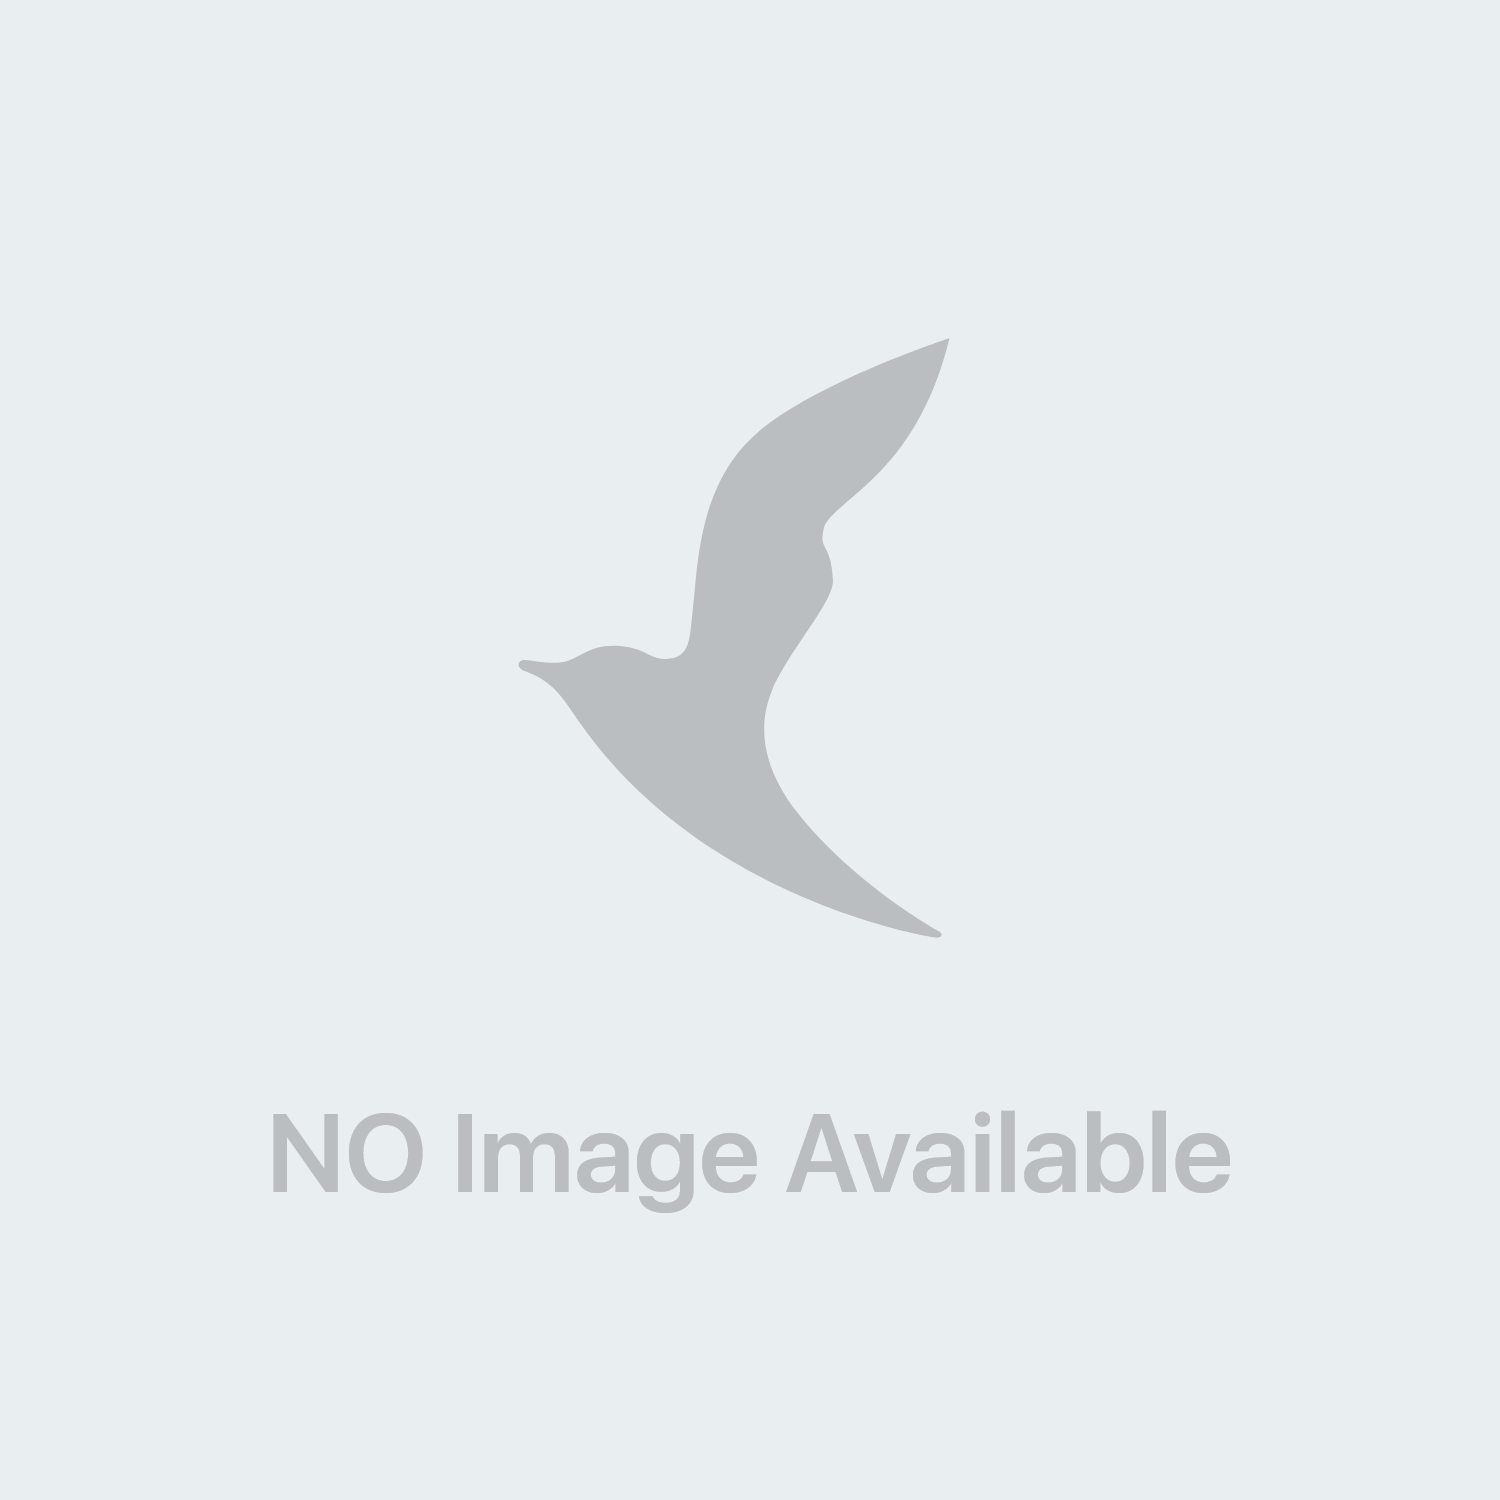 Estetil Maschera Purificante 17ml